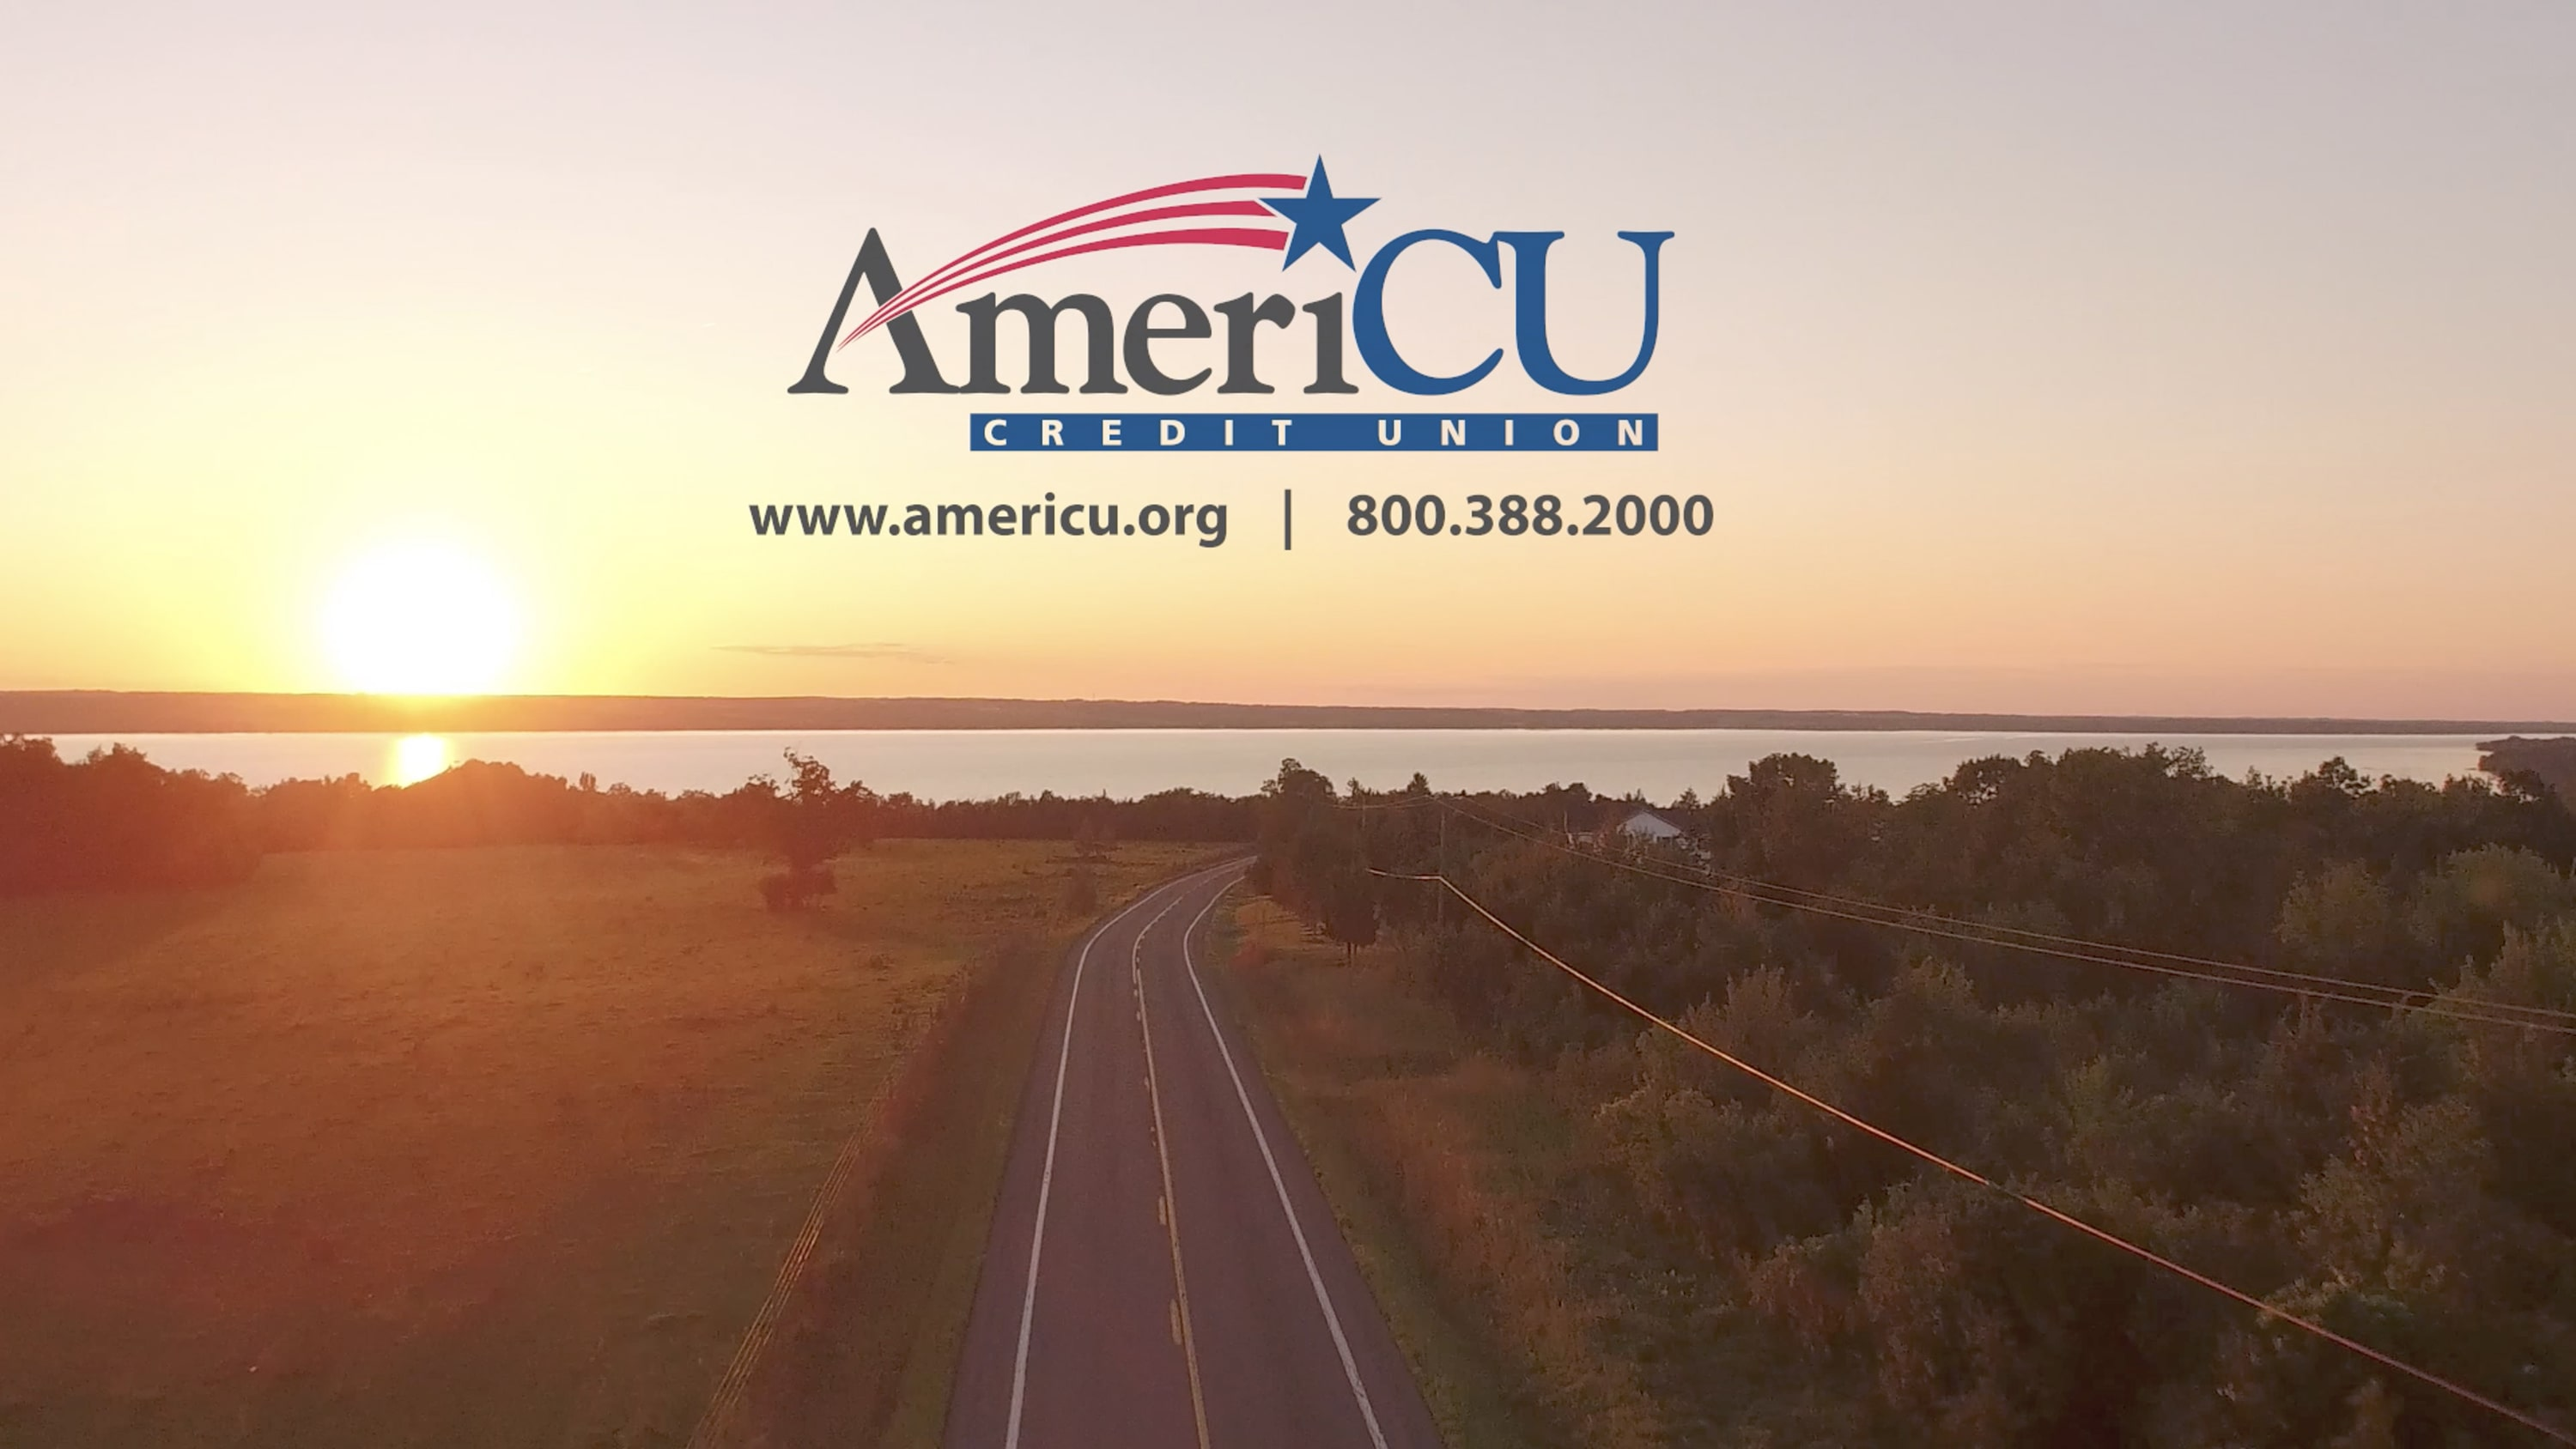 A serene road with the AmeriCU logo over the sunset